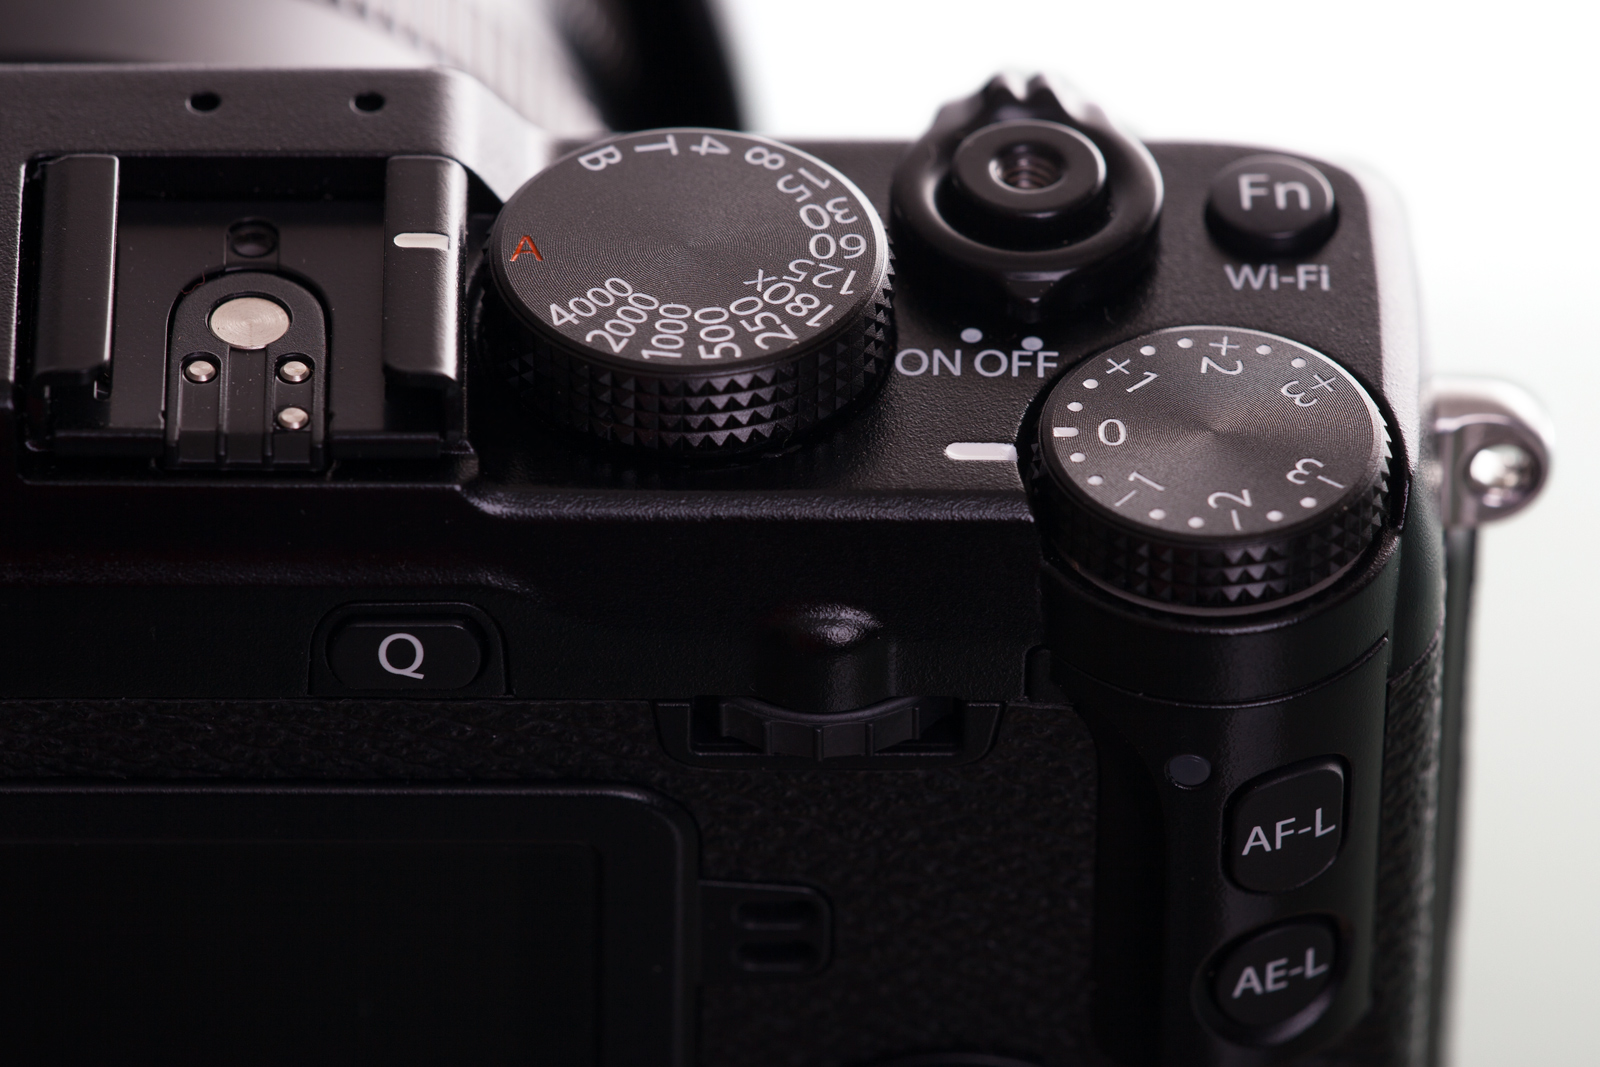 Hands On Review Fujifilm X E2 E3 Kit Xf 18 55mm F 28 4 R Lm Ois Silver Fuji Top Dials Shutter Speed The Left Exposure Compensation Right F28